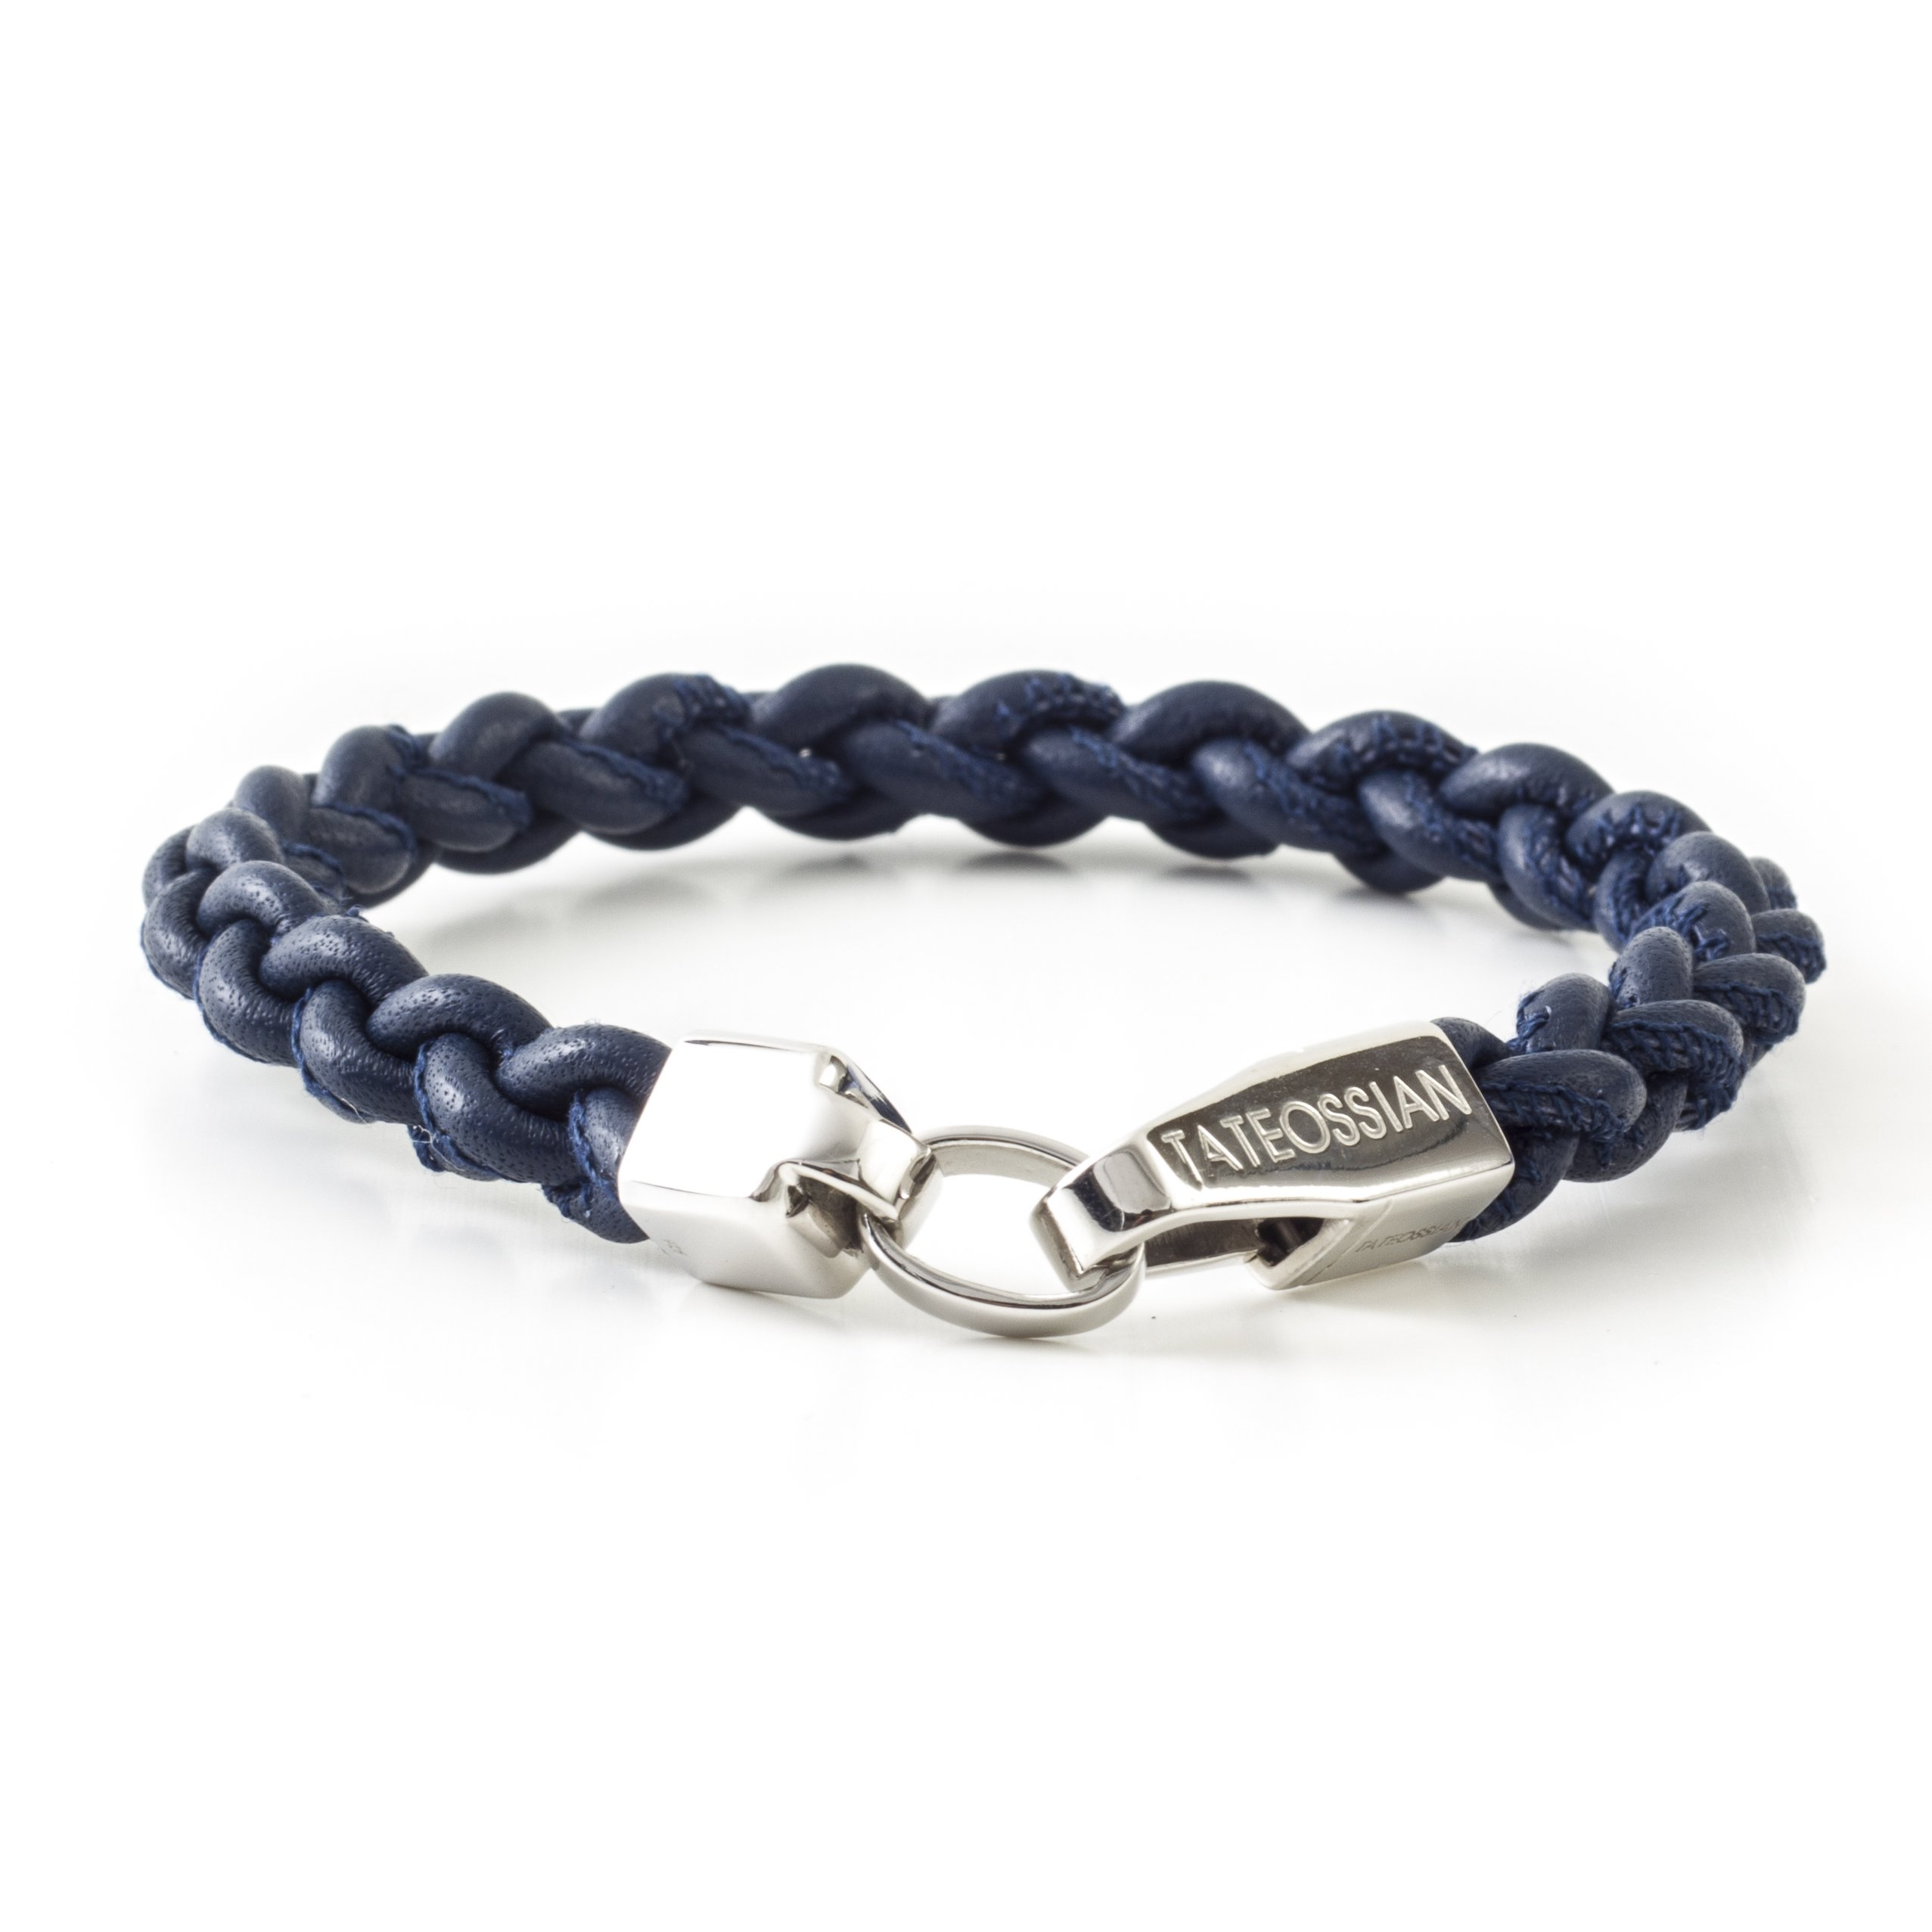 Tateossian Mens Italian Leather with Sterling Silver Closure Bracelet - Navy/Silver